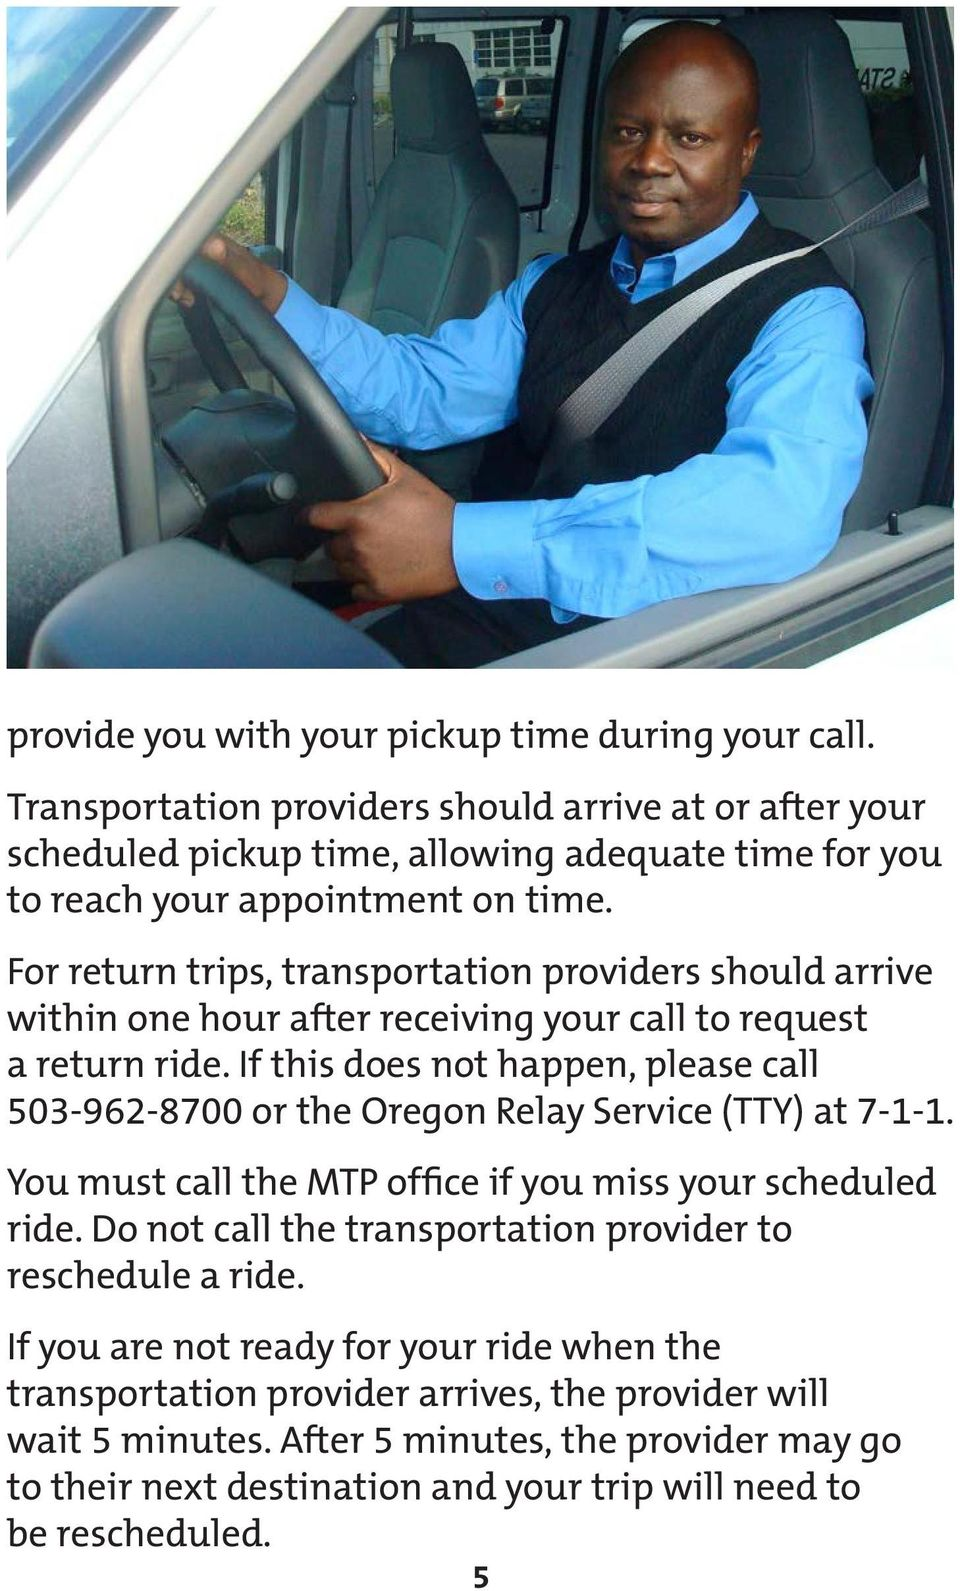 For return trips, transportation providers should arrive within one hour after receiving your call to request a return ride.